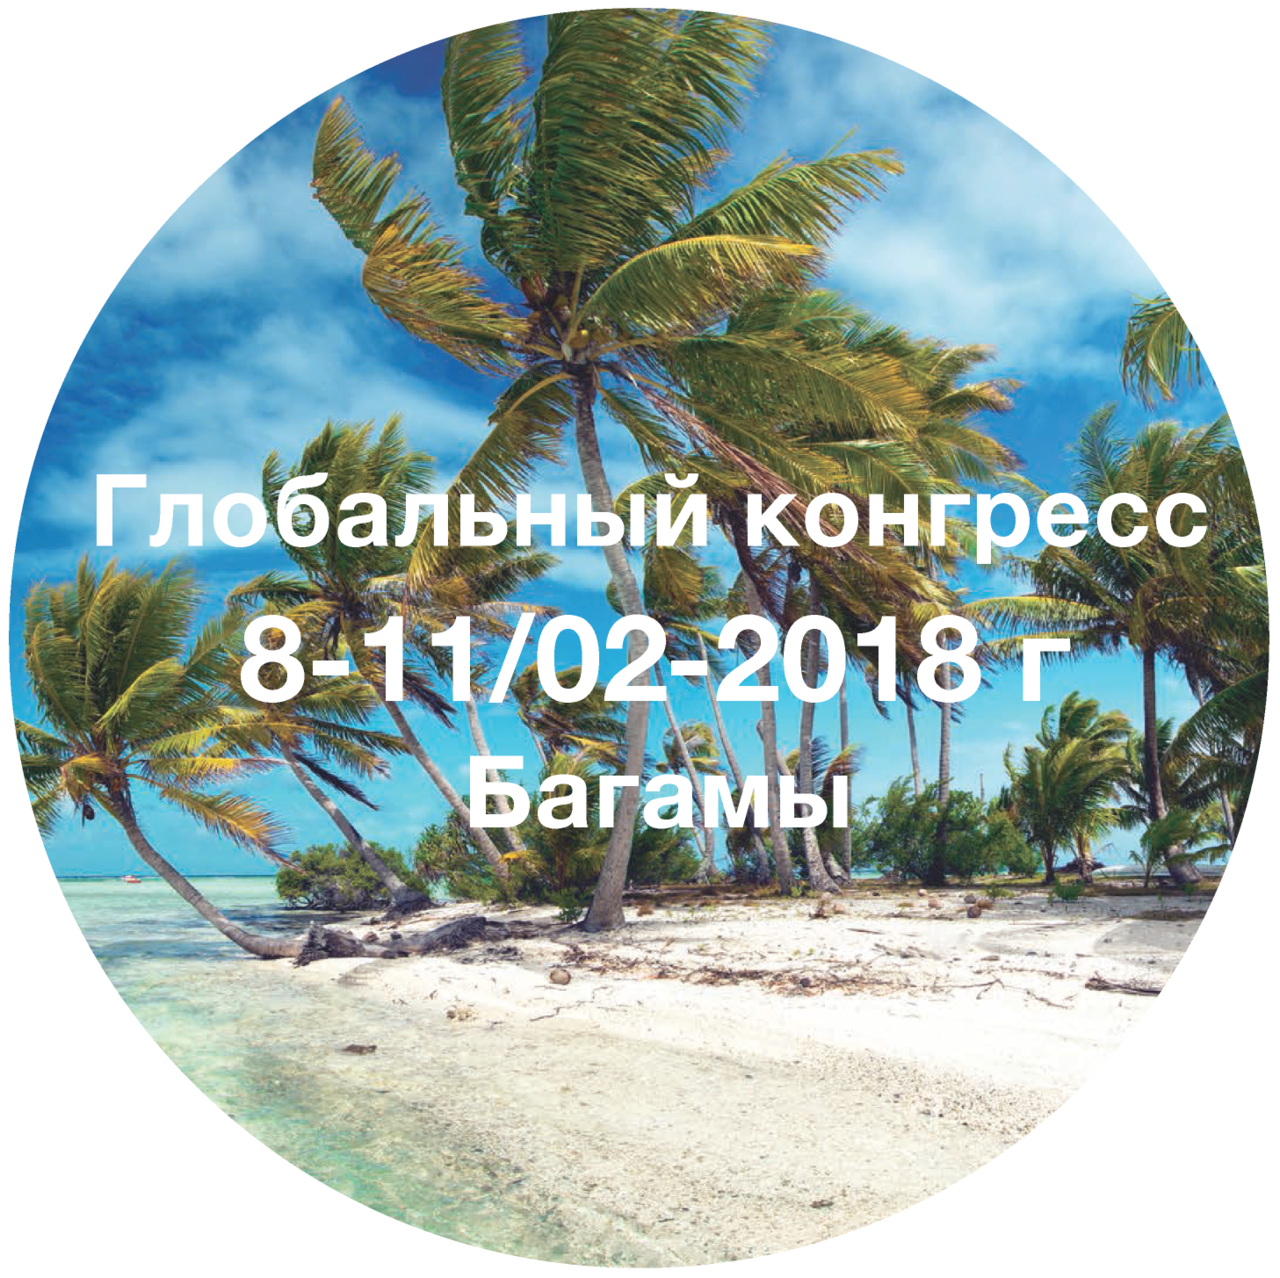 Bahamas_flier_1_2018-No Price (перетянутый)